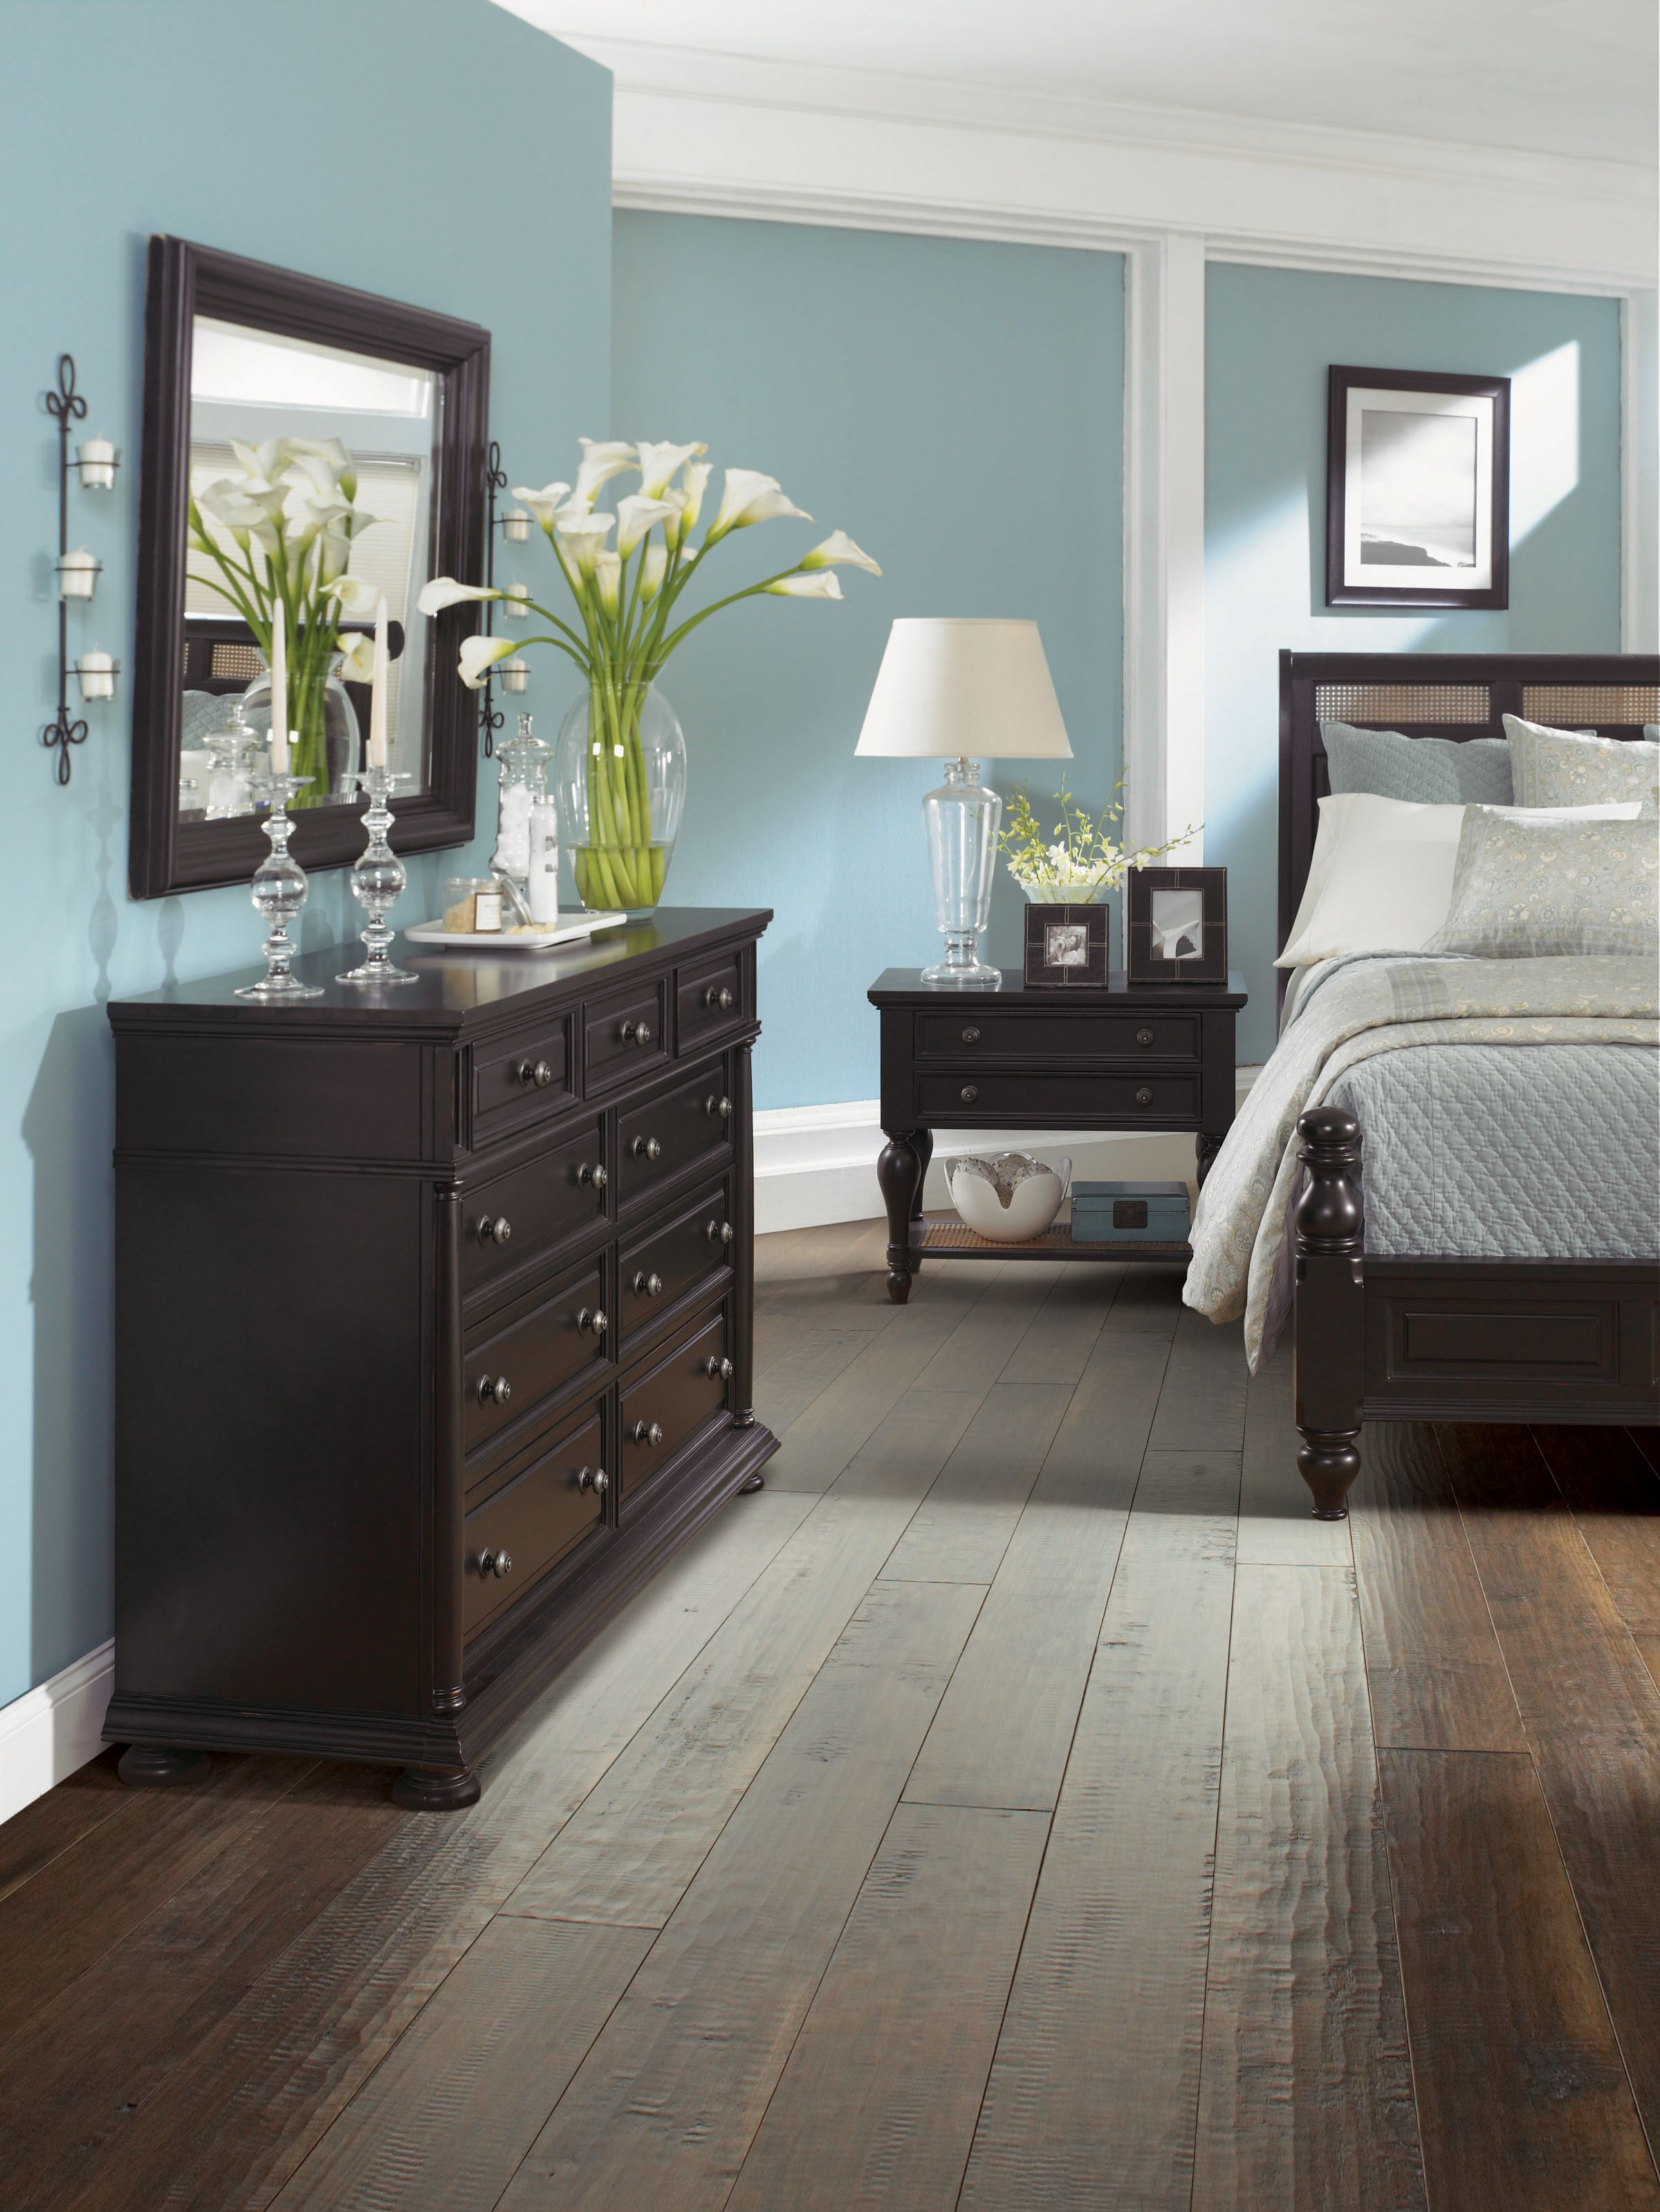 30 wood flooring ideas and trends for your stunning bedroom black furniture moldings and. Black Bedroom Furniture Sets. Home Design Ideas